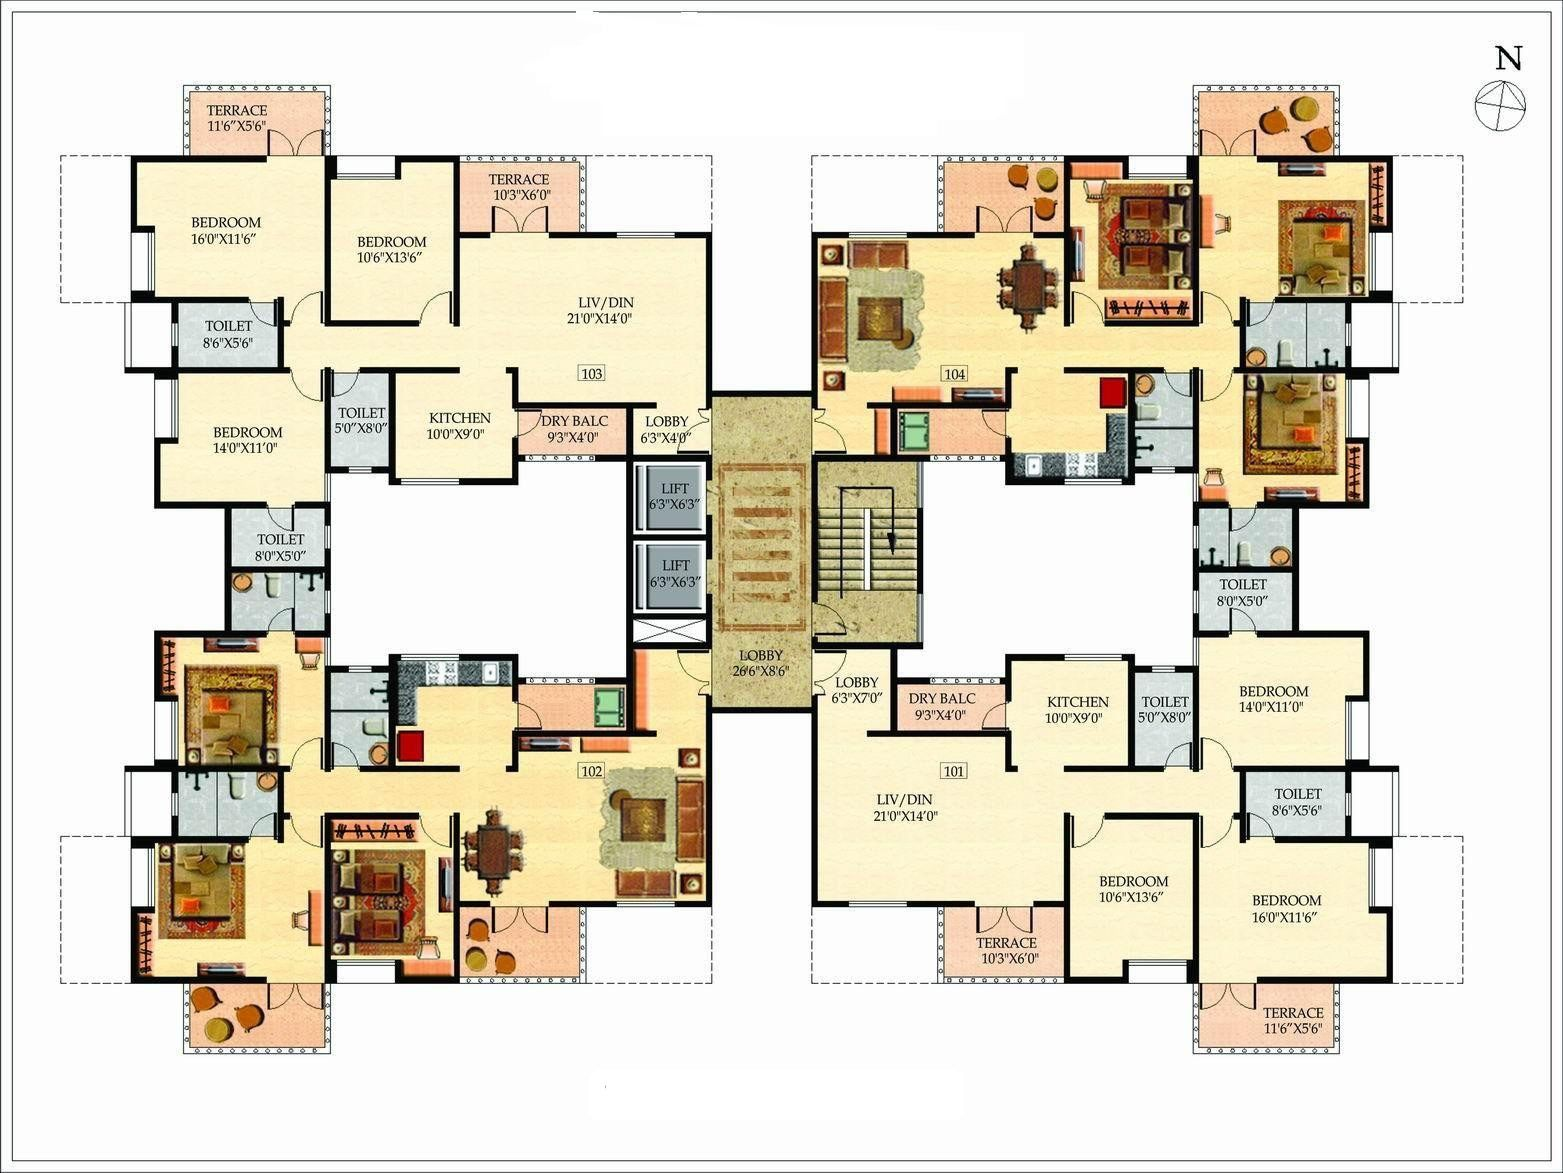 6 bedroom mansion floor plans design ideas 20172018 Pinterest